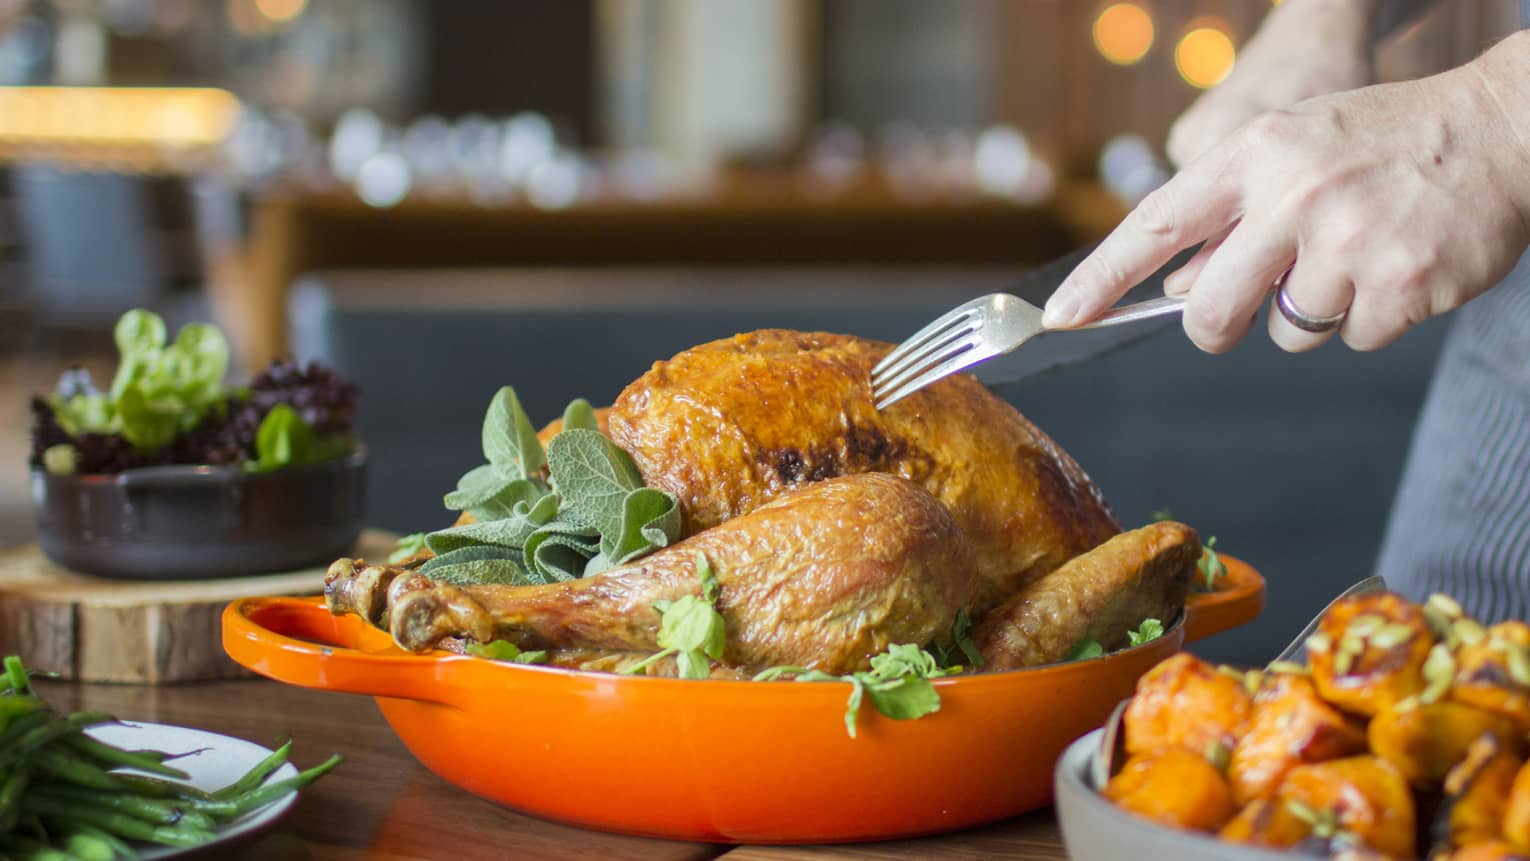 Thanksgiving turkey in orange dish being served by server holding fork